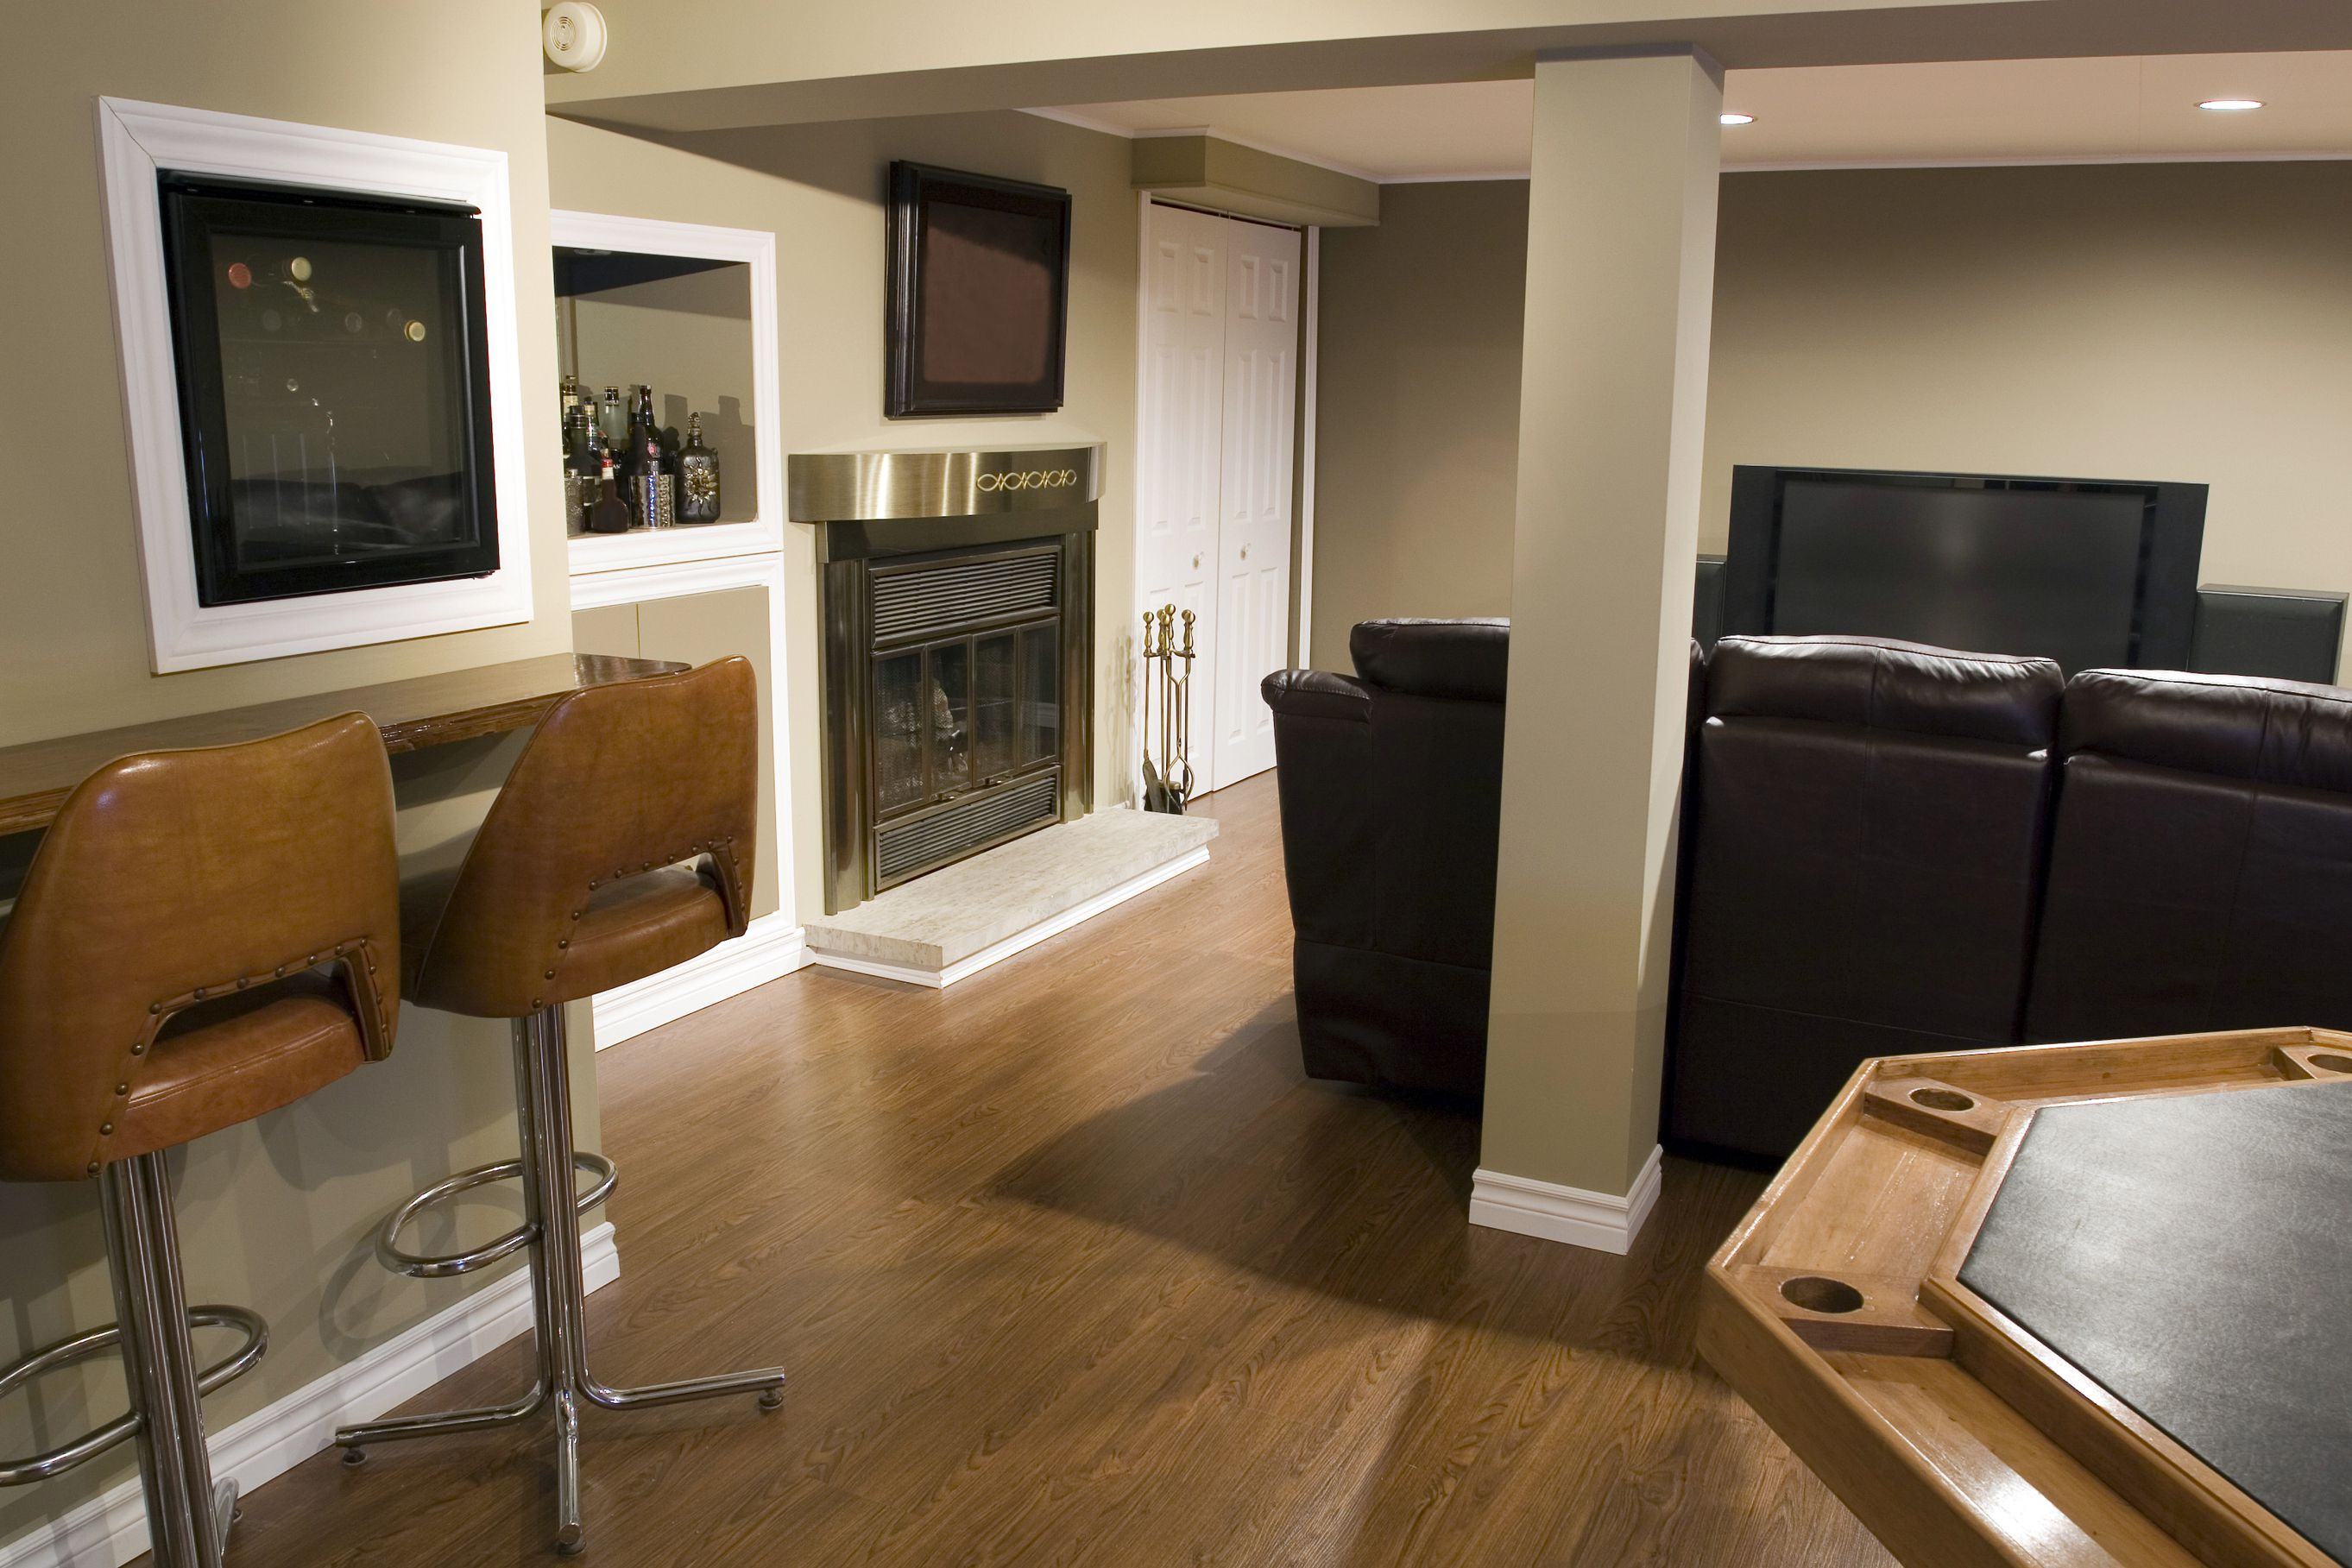 hardwood floor installation mn of best basement flooring options inside basementflooring 5bb76ea04cedfd00261522e8